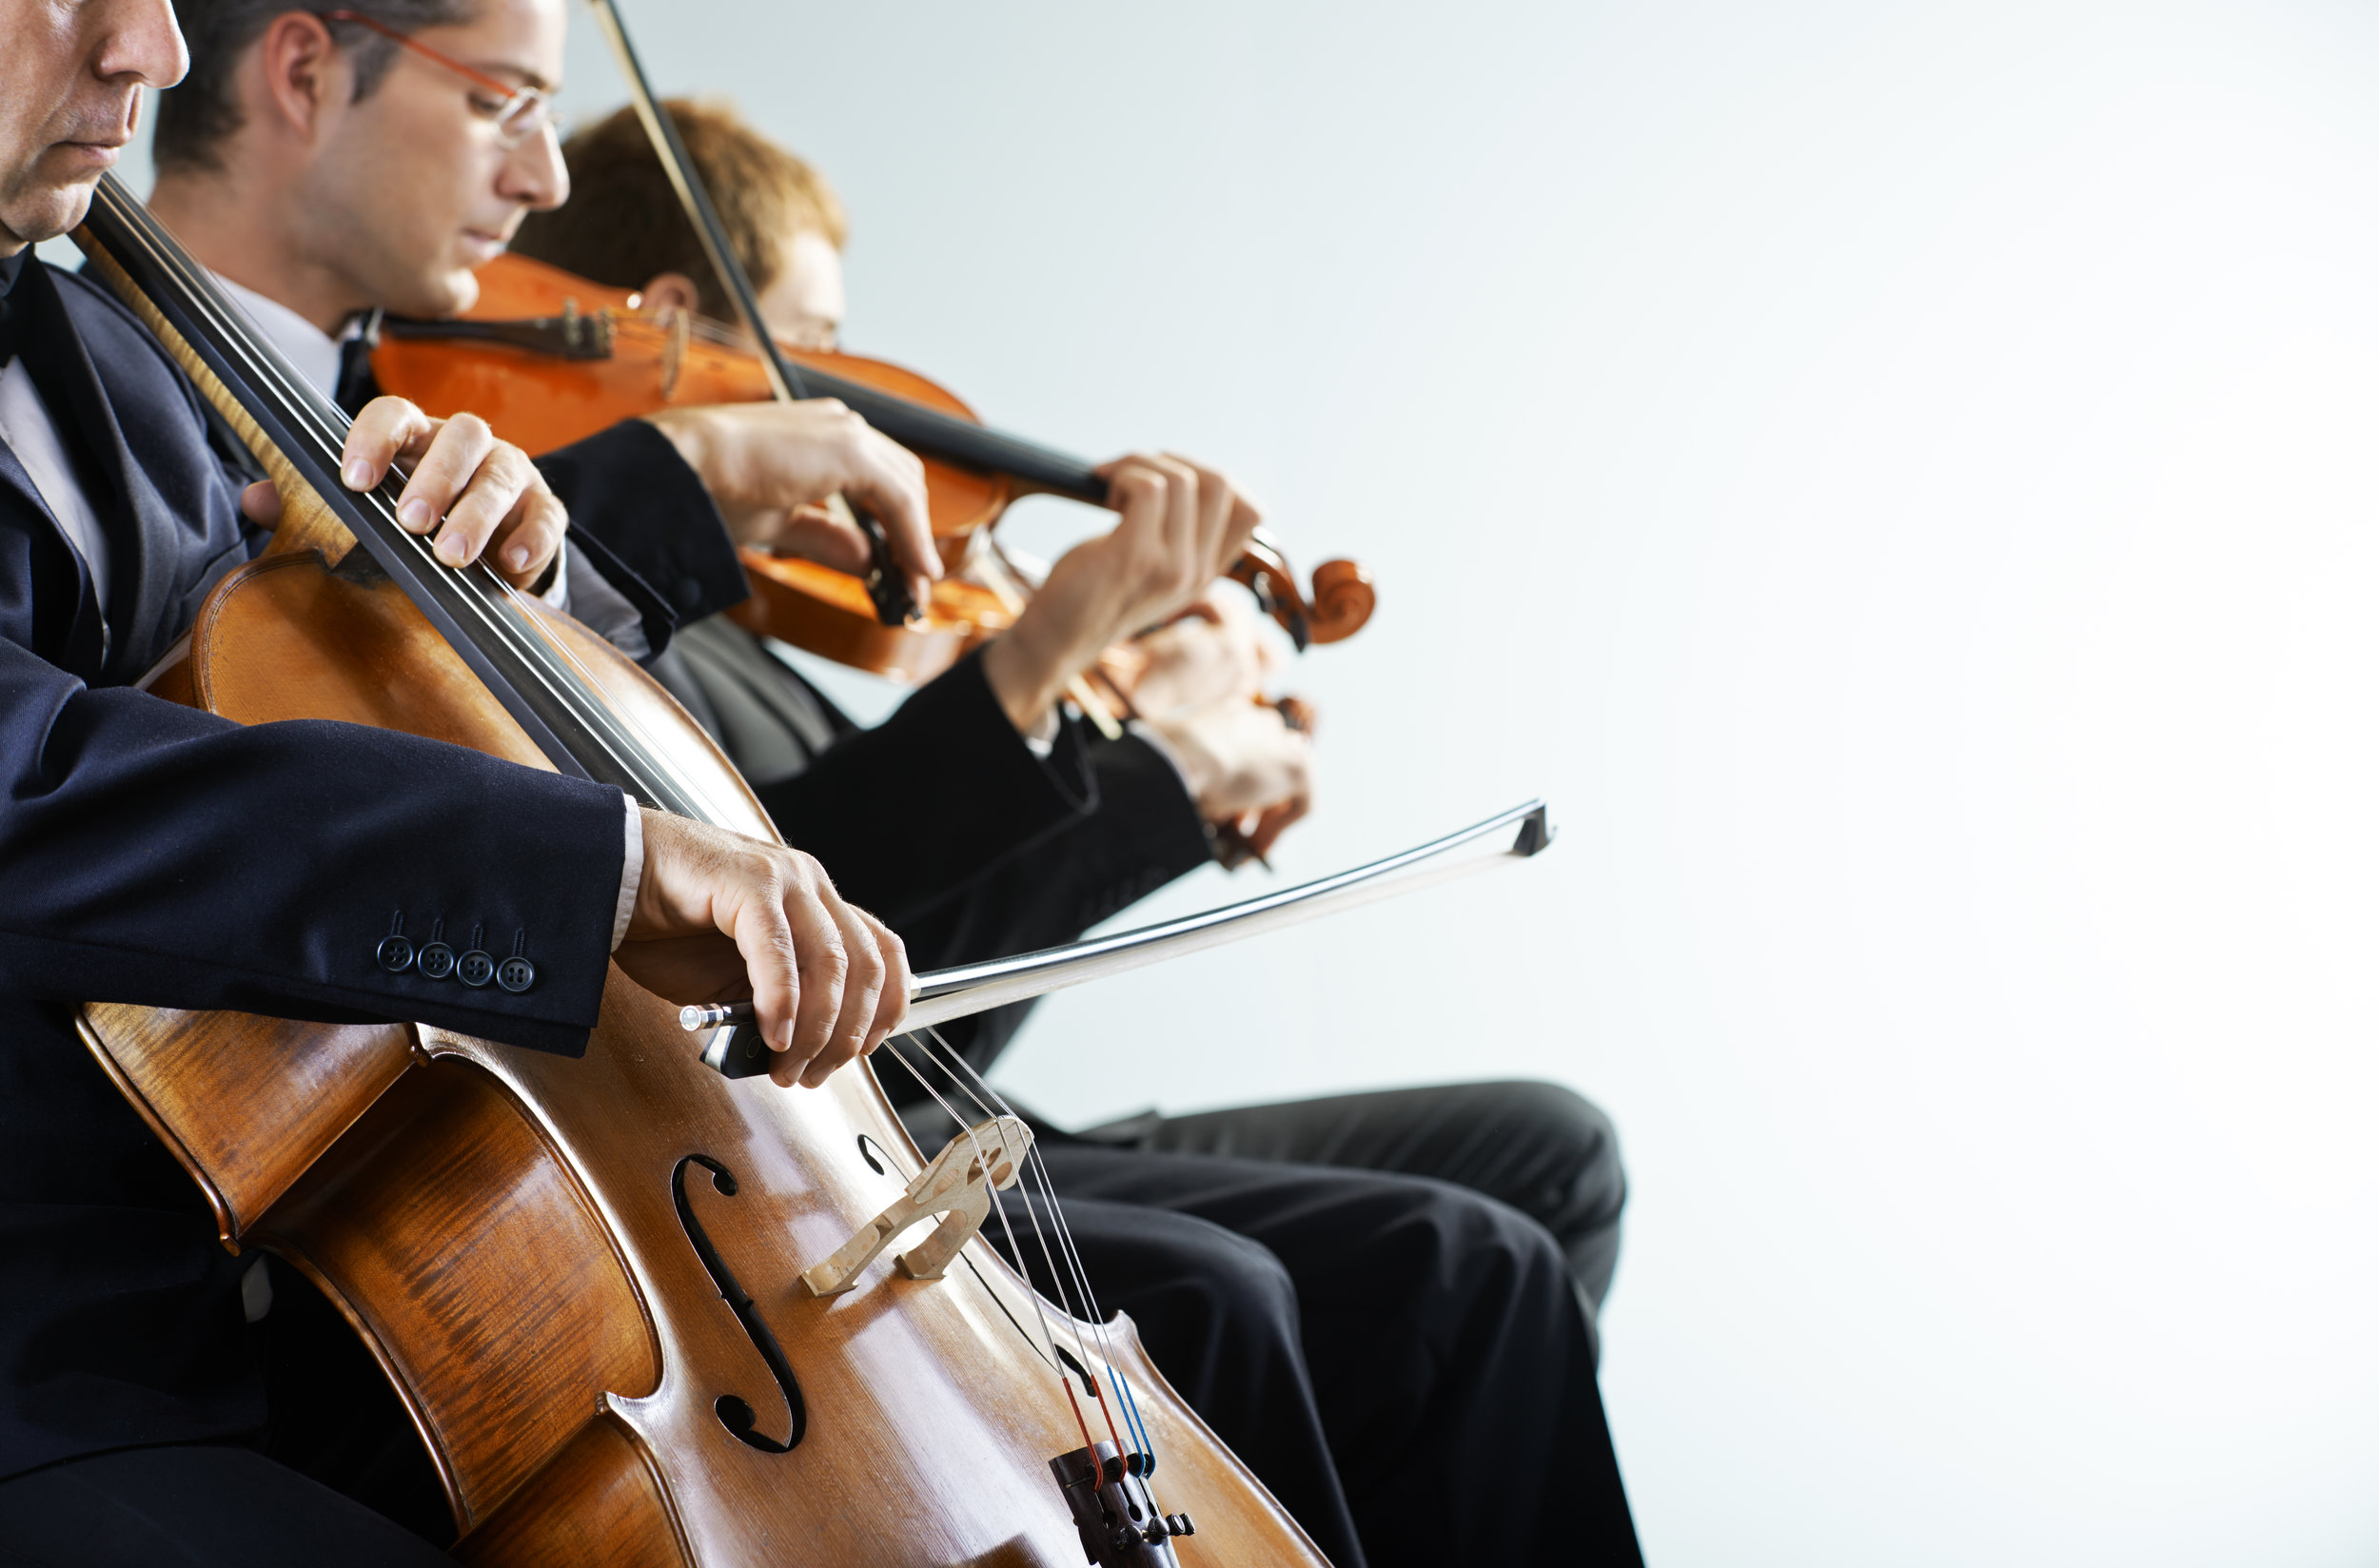 Music - We love all styles of music at Beau Strings. Our musicians are versatile, dynamic, and creative, performing a wide variety of genres, world music, and even composing special songs just for you. Just let us know what kind of style and atmosphere you're looking to create and we'll make it happen!